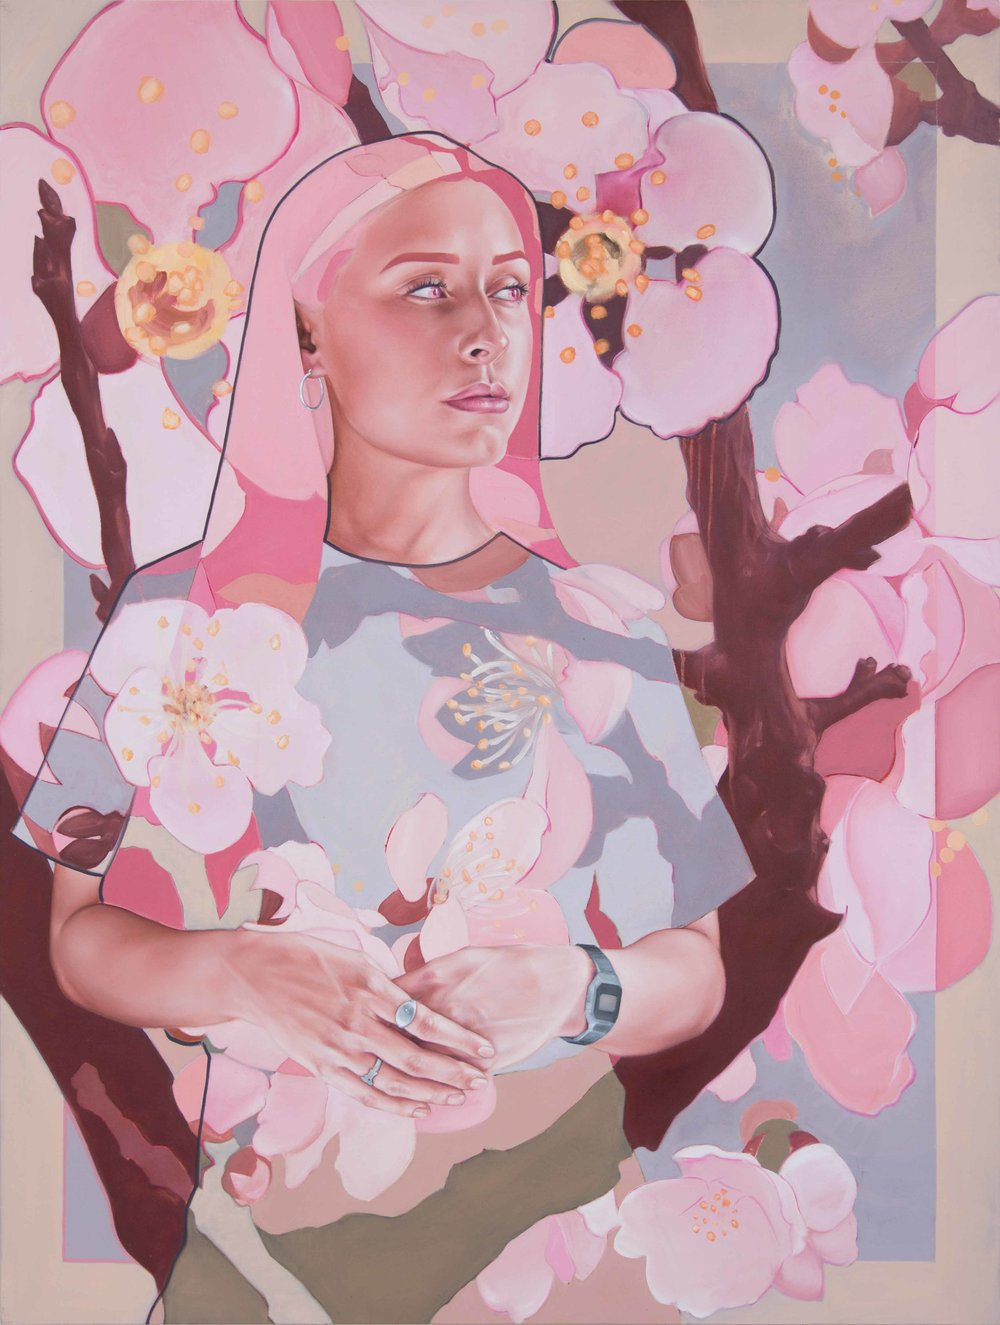 'Lady and the Cherry Blossoms' - 20 prints155 euro each (not including postage)53x40cmIf interested, get in touch with me through the 'contact' page on this website or email me at berkeryshane@gmail.comThanks :)